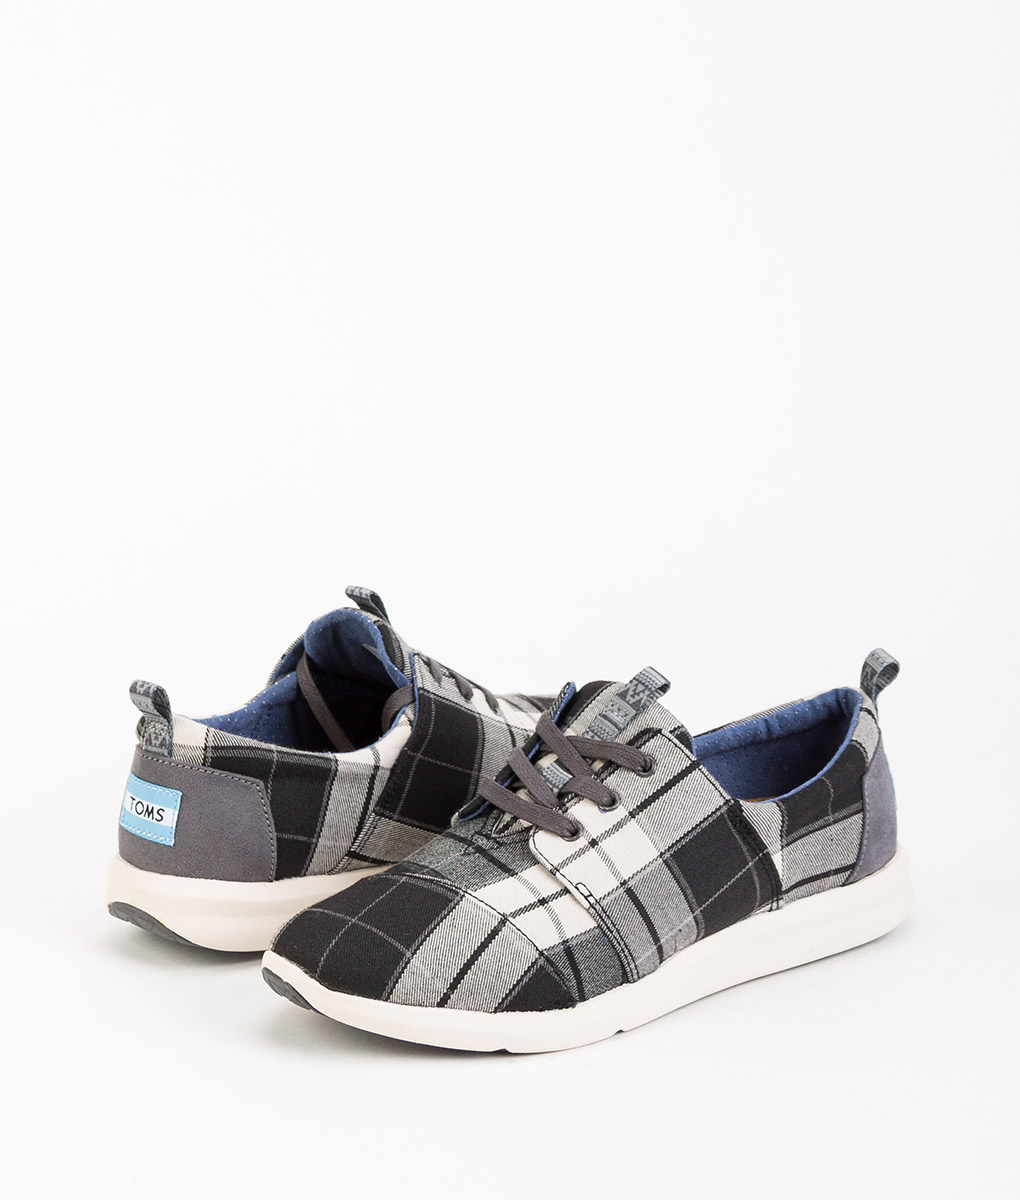 TOMS Women Sneakers 8890 DEL RAY, Black White 89.99 1